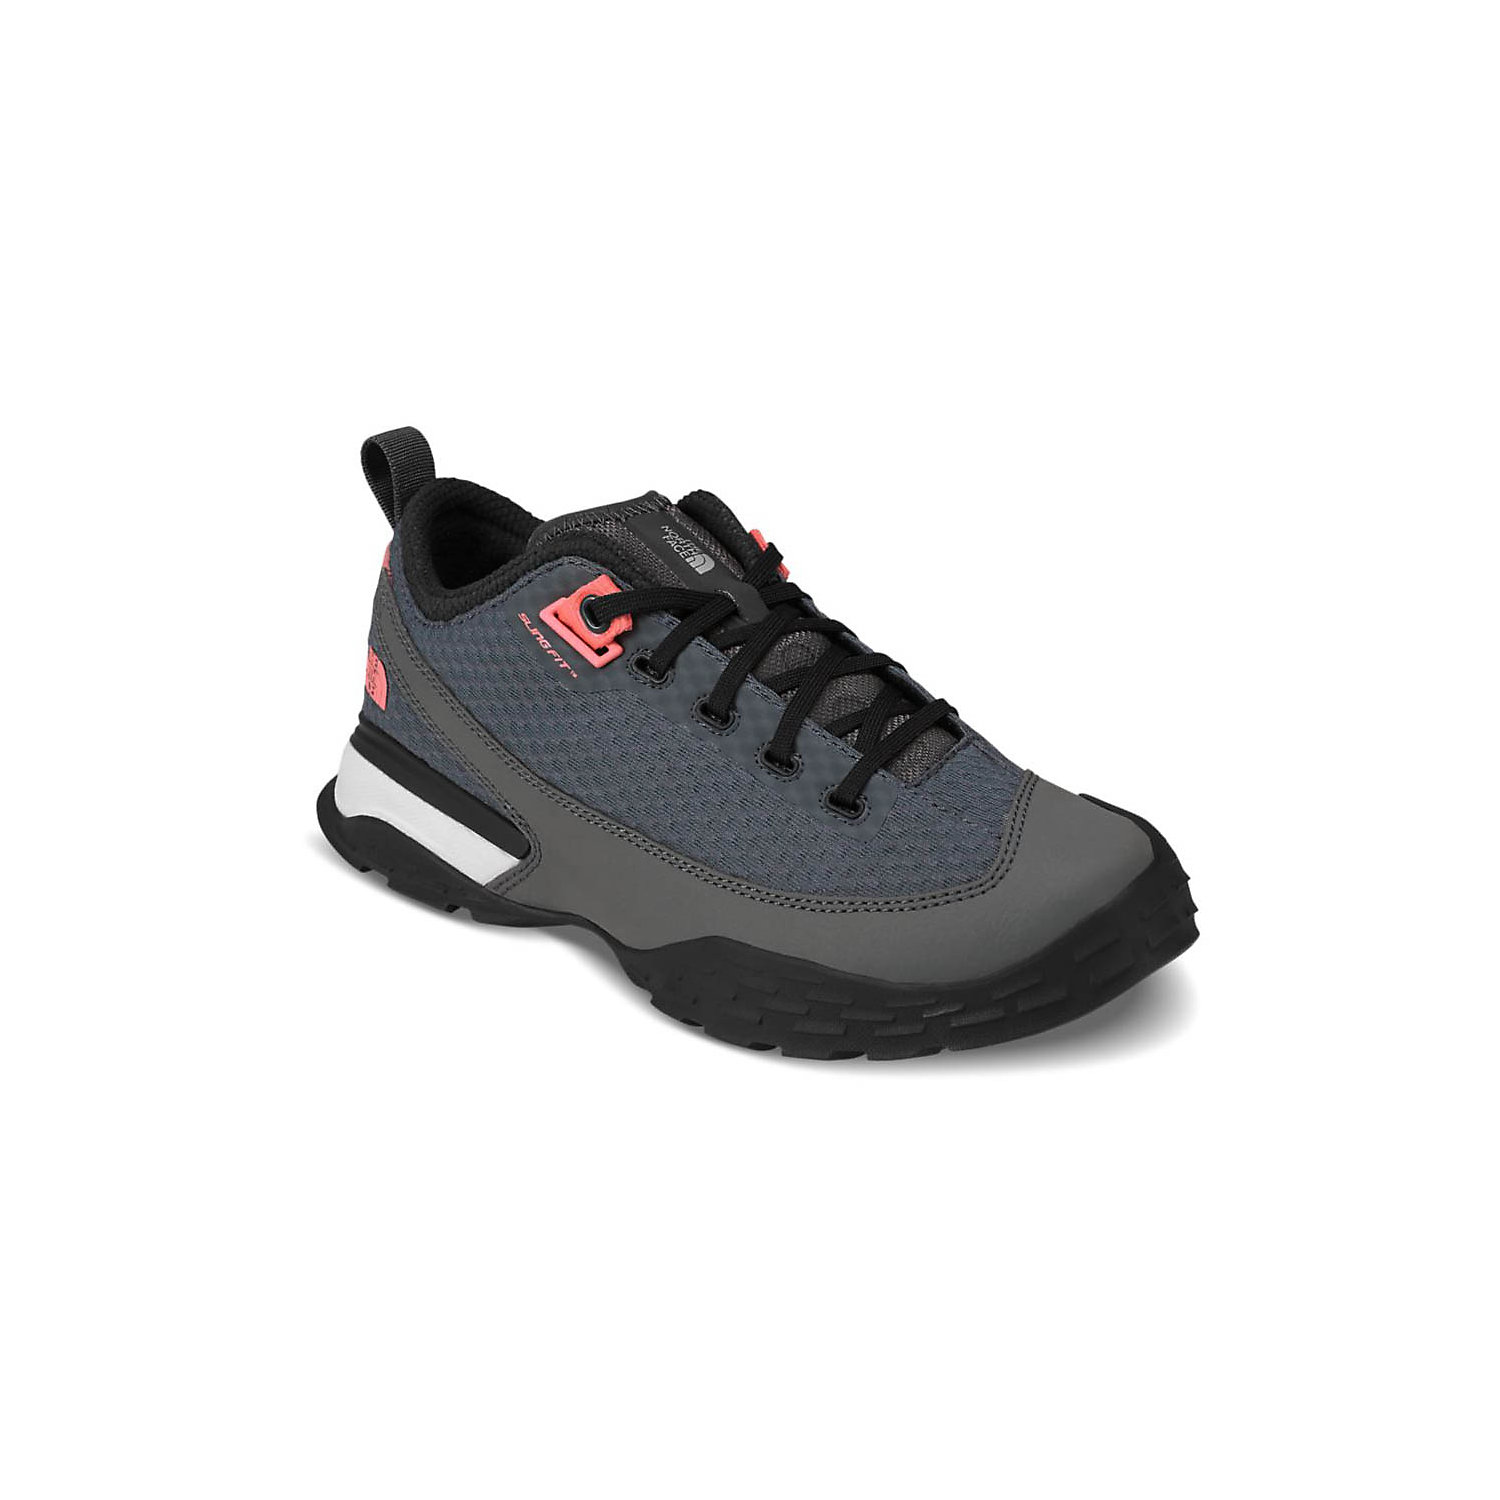 6b14730ca37d The North Face Women s One Trail Shoe. Double tap to zoom. Turbulence Grey    Desert Flower Orange